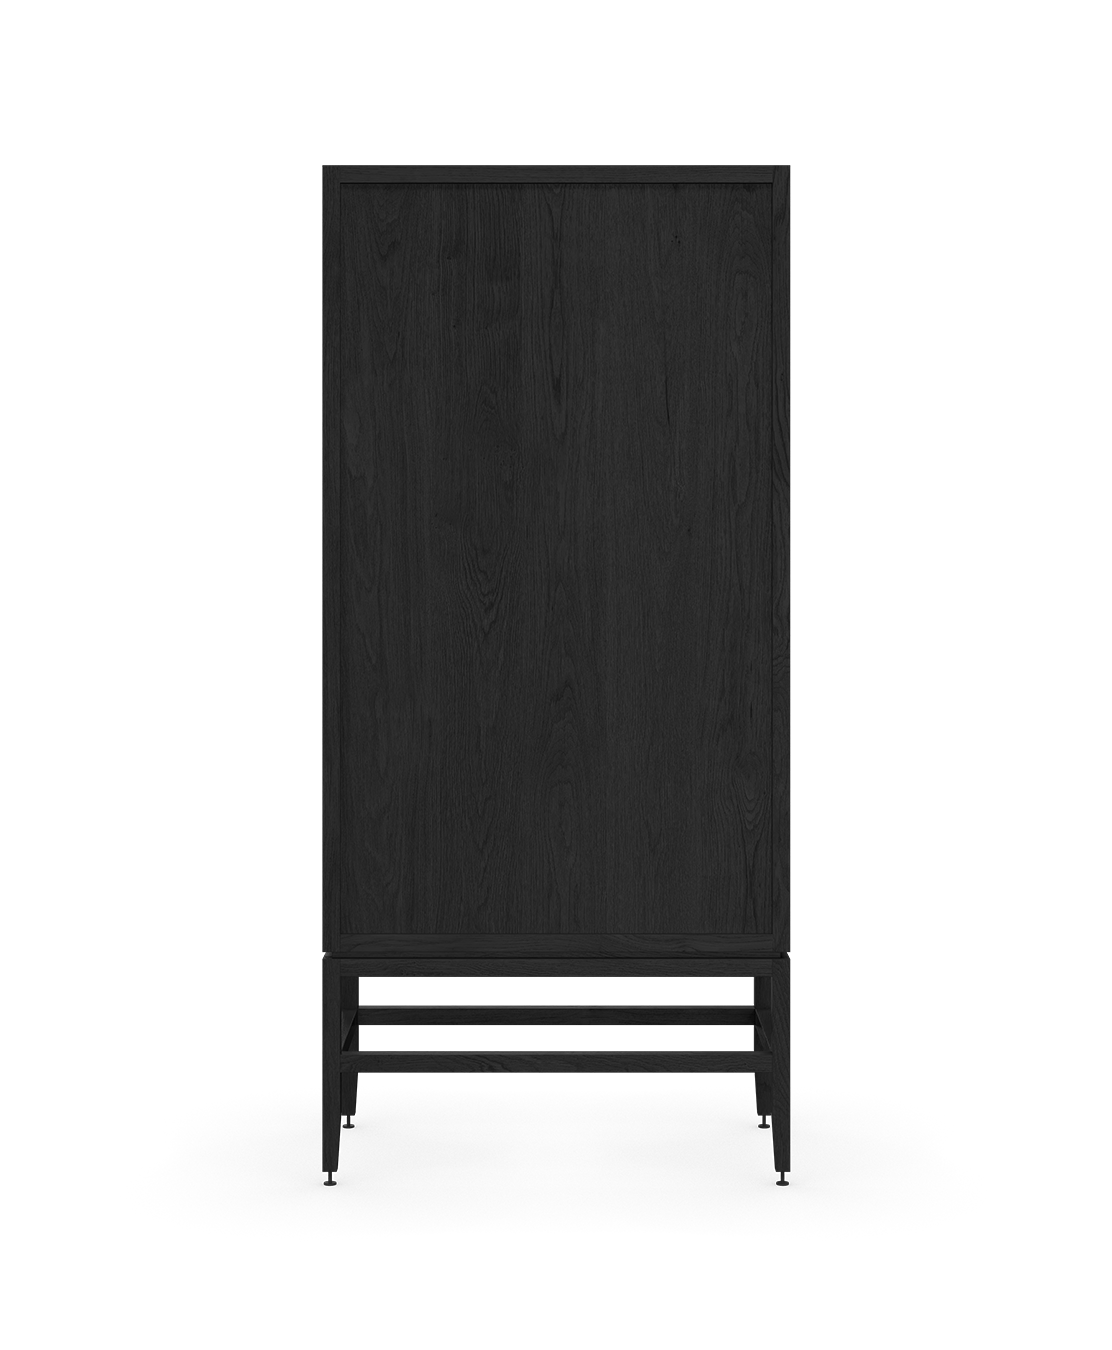 coquo volitare midnight black stained oak solid wood modular 2 glass doors storage glass display hutch cabinet 33 inch C2-D-3318-1202-BK